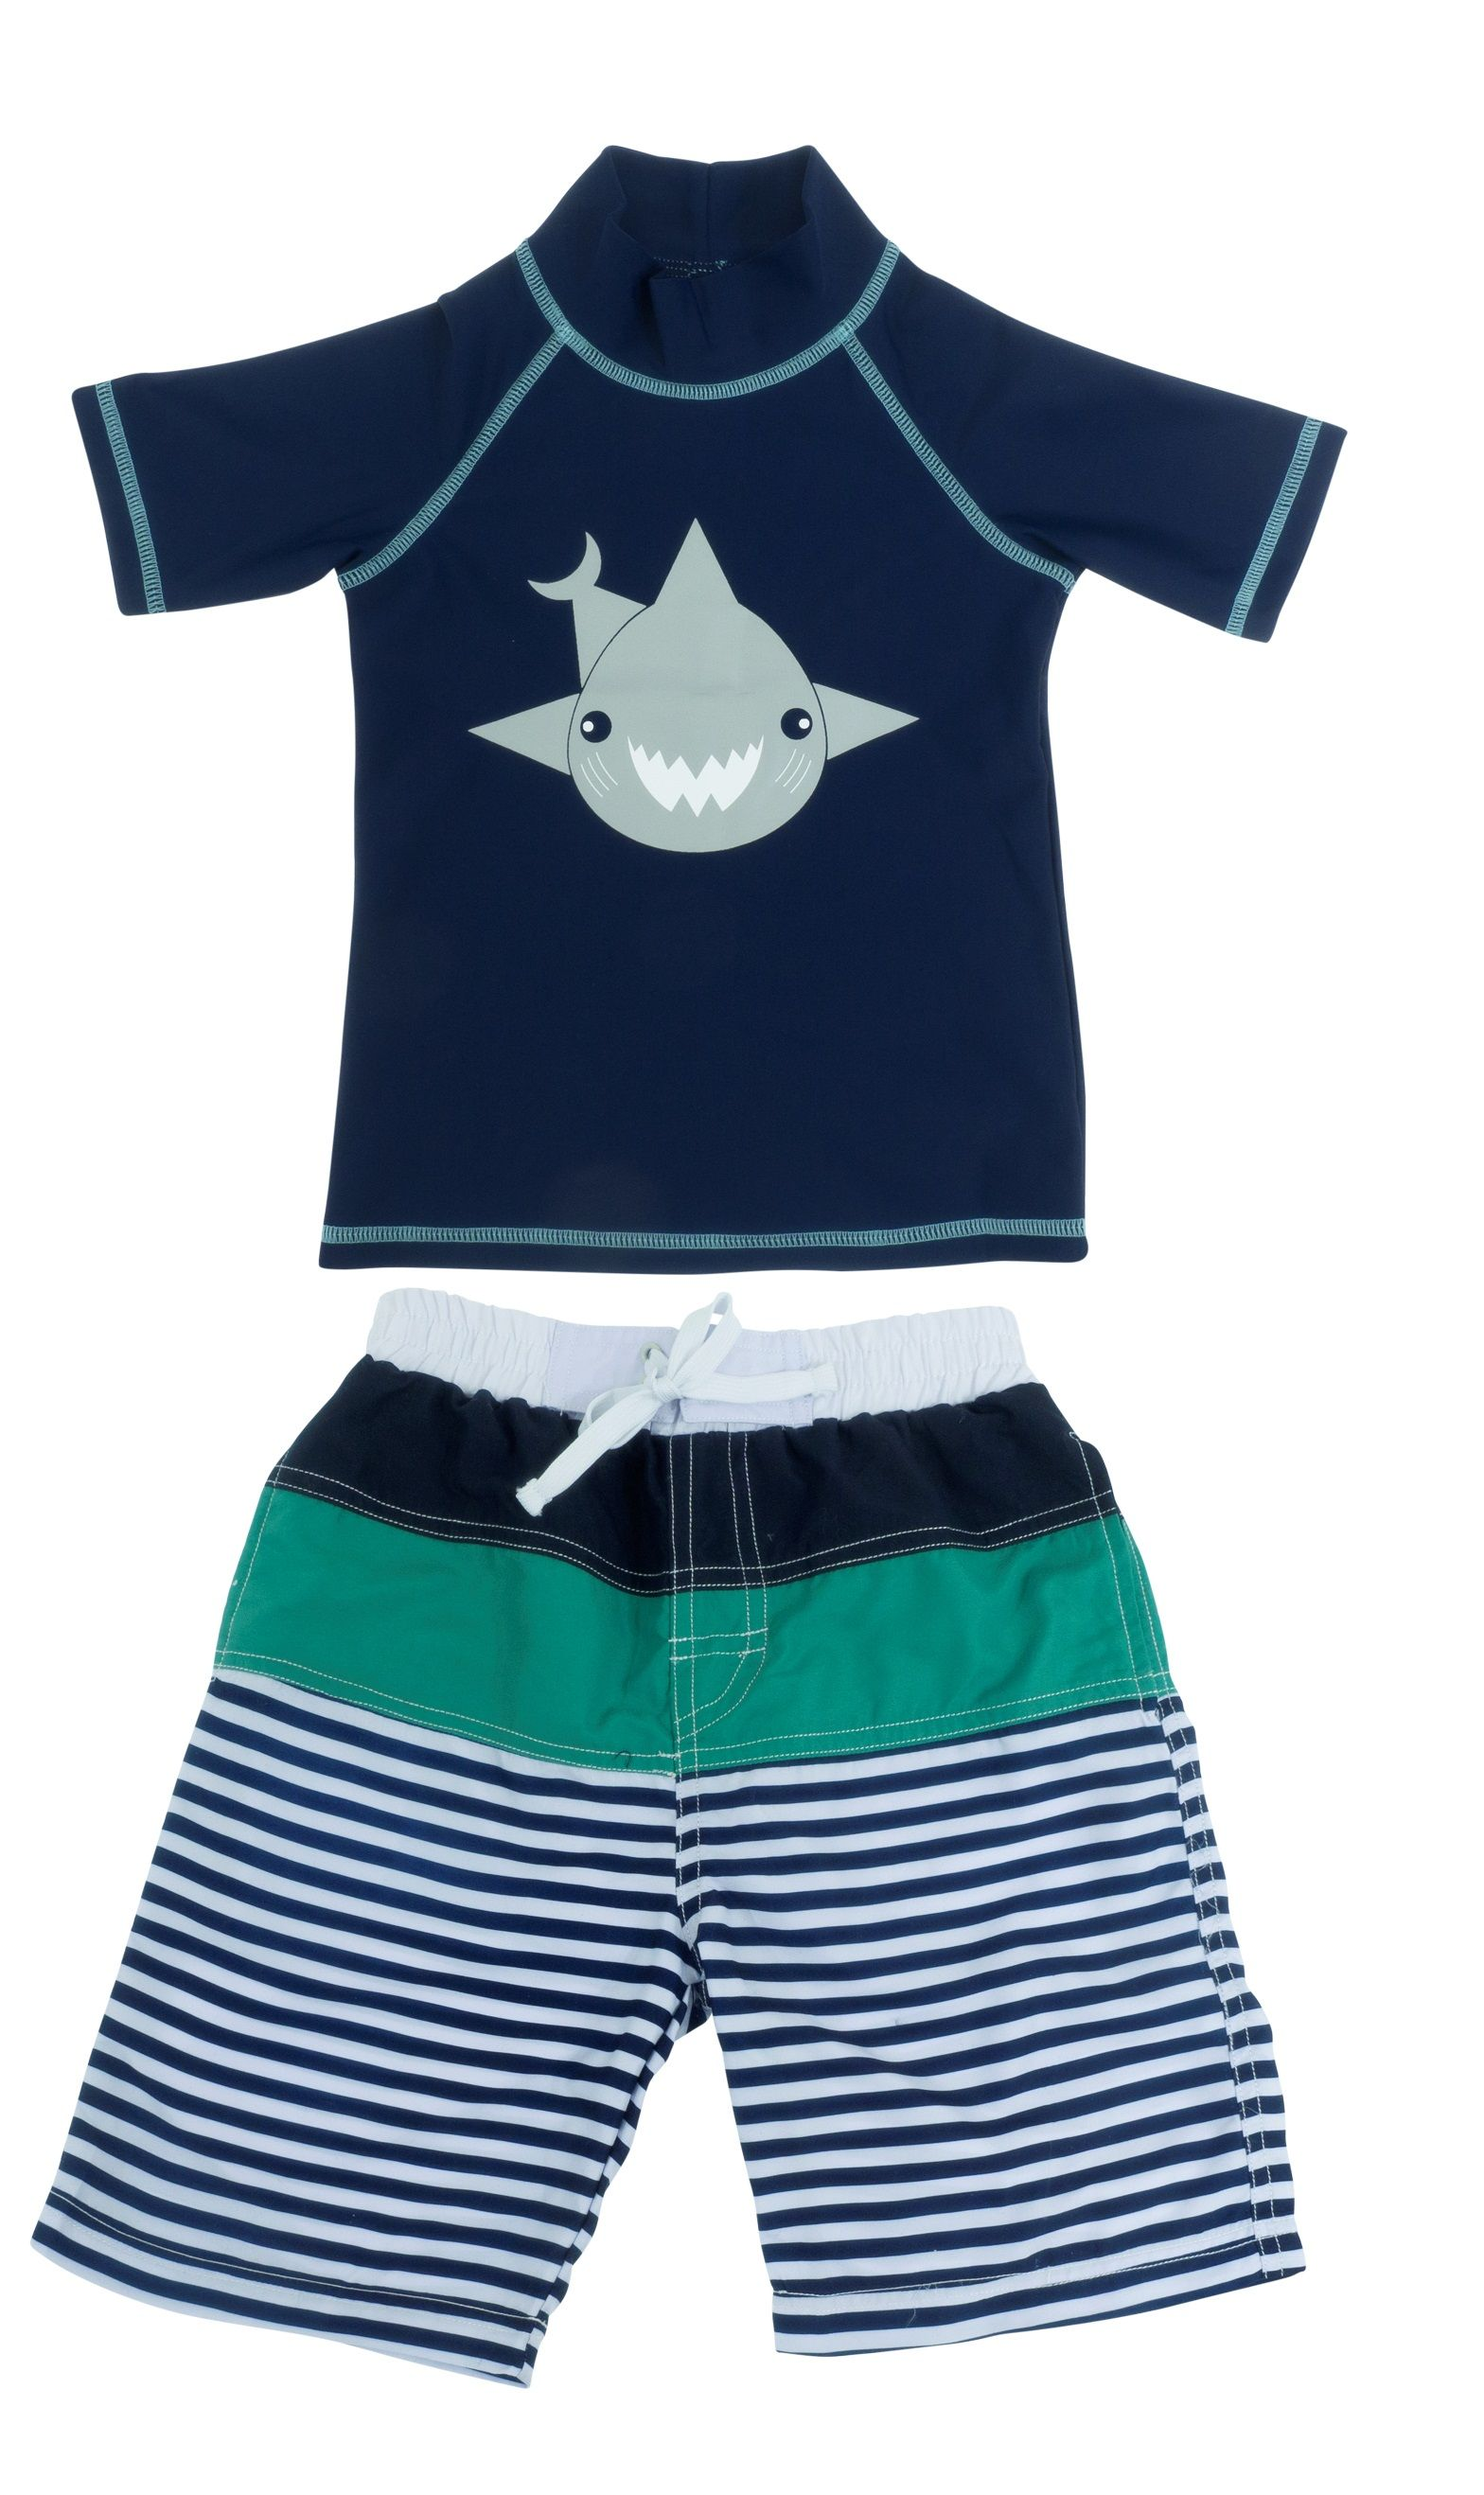 6271dcf7bbd83 Banz Boys UV swimwear set Navy Shark SS top and Tropical Stripe  Boardshorts. Banz 2018 swimwear range for boys and girls aged 3 months to 6  years.